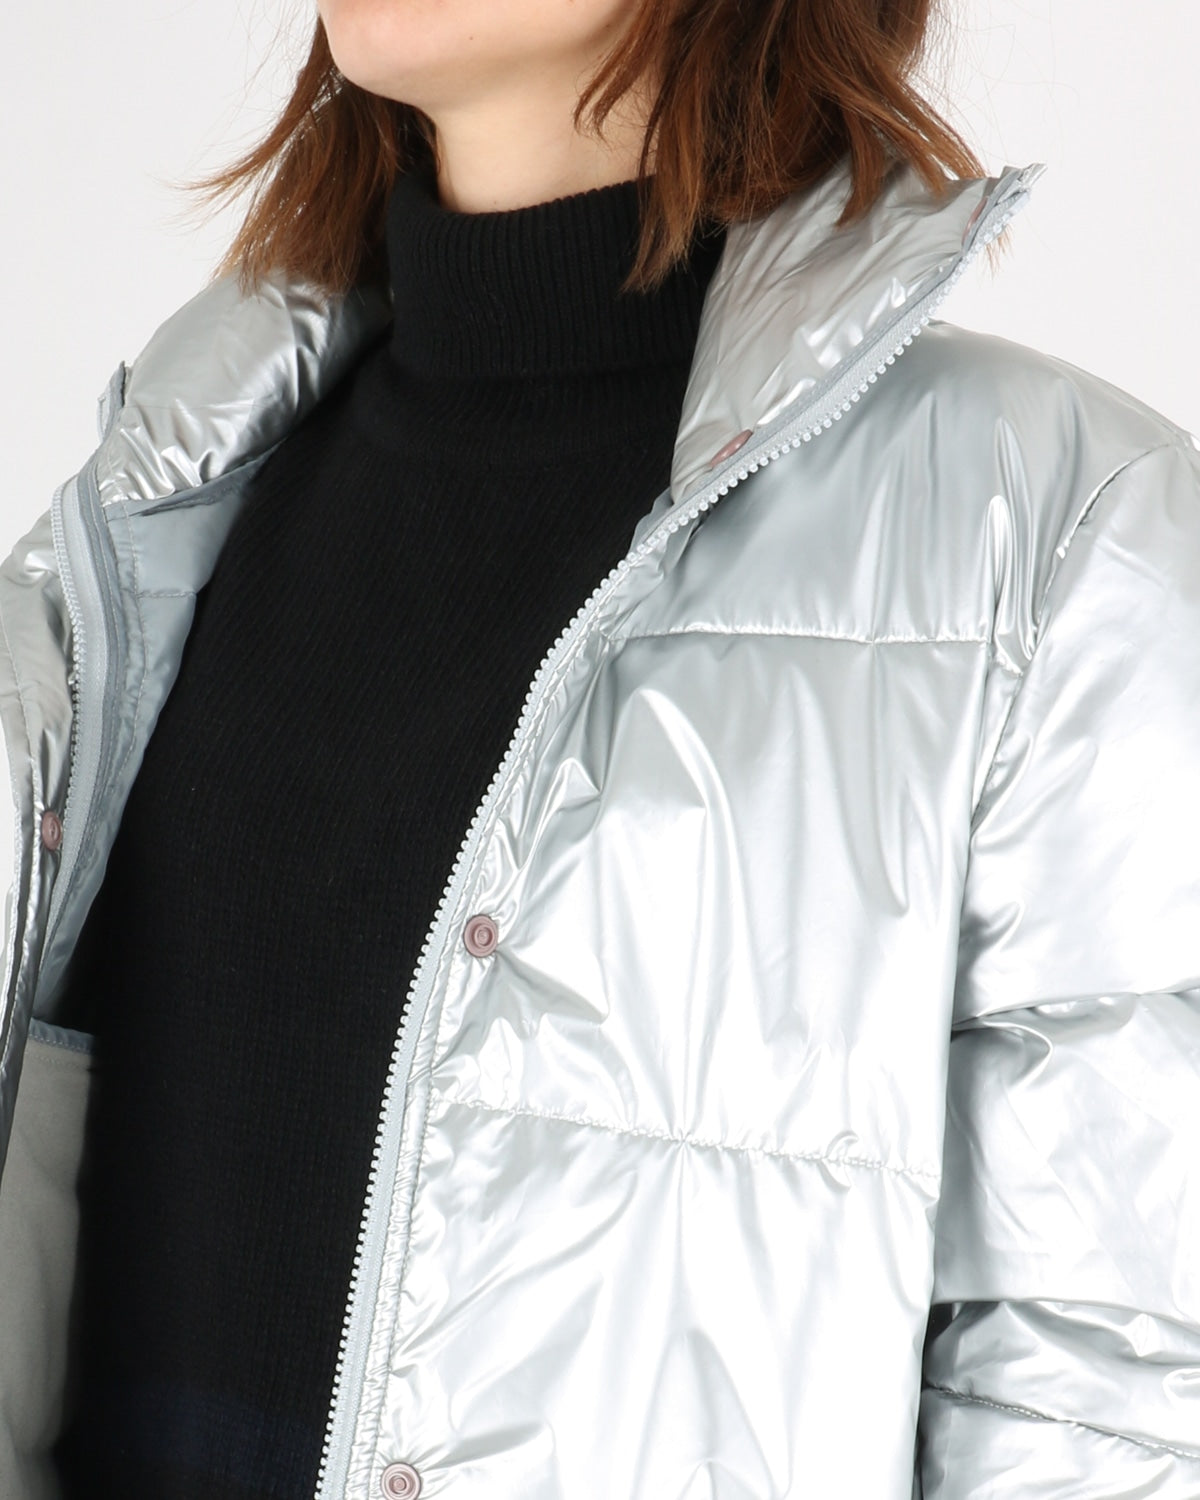 selfhood_puffer jacket 77126_silver_4_4